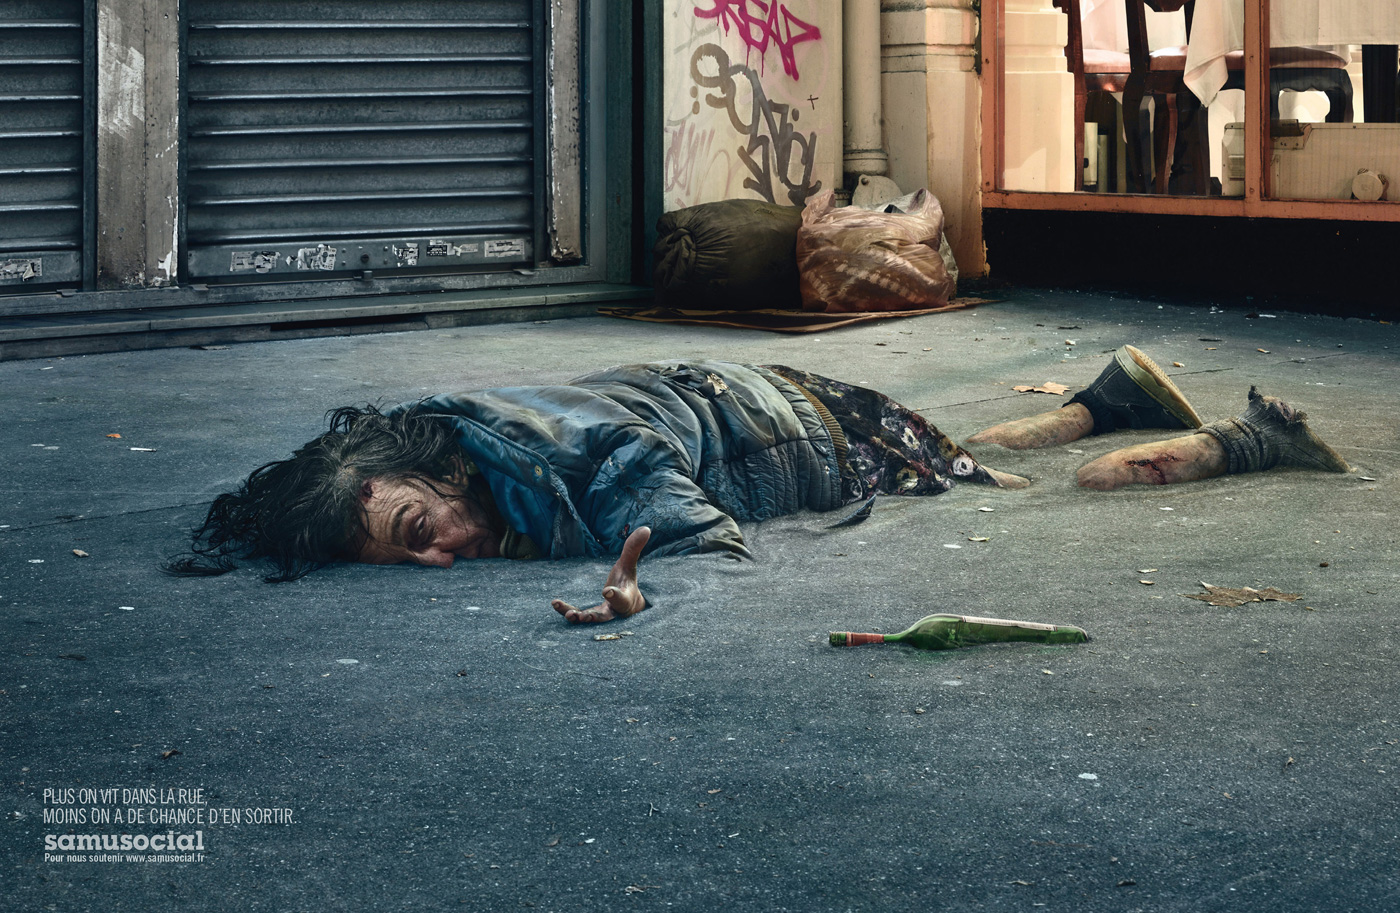 Homeless Become Part of the Fabric of Society